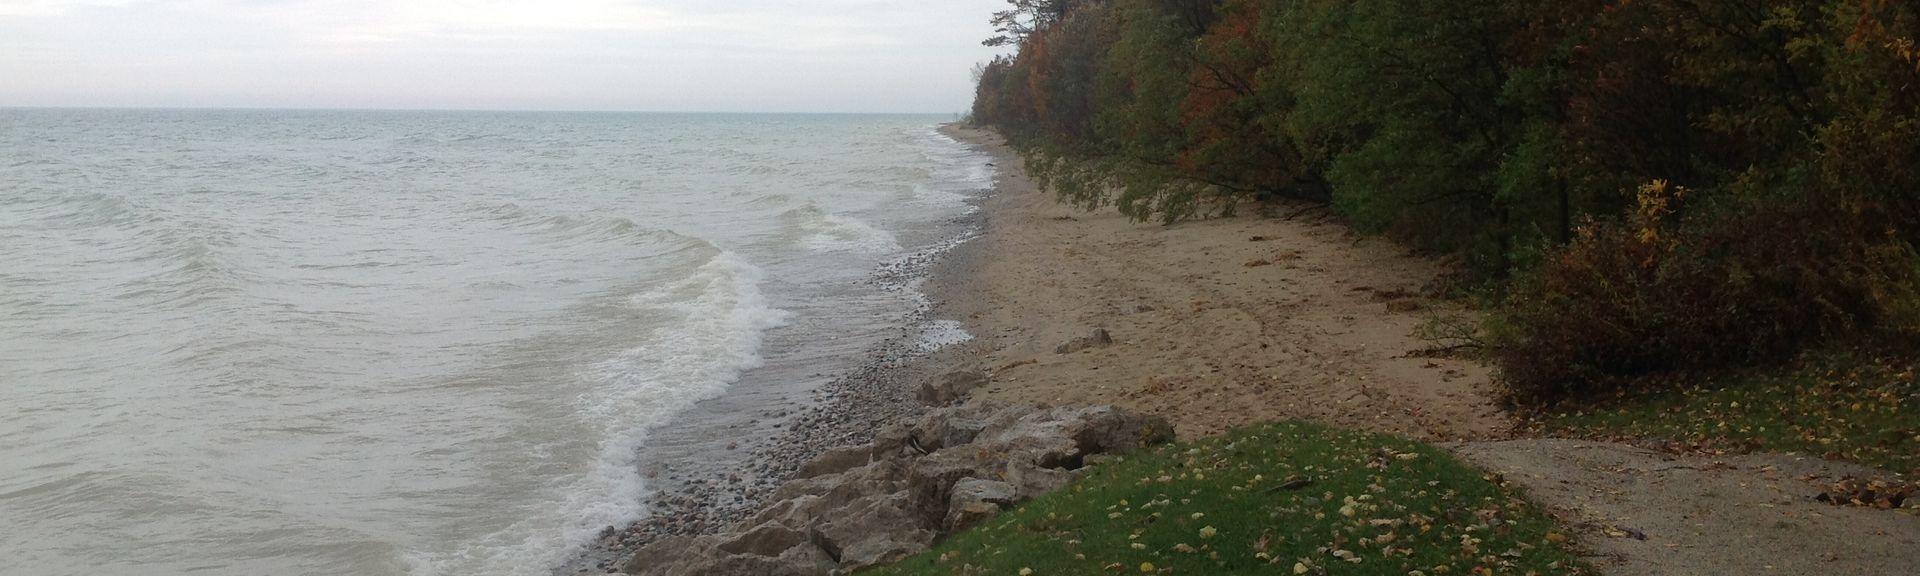 Laketown Beach, Holland, Michigan, United States